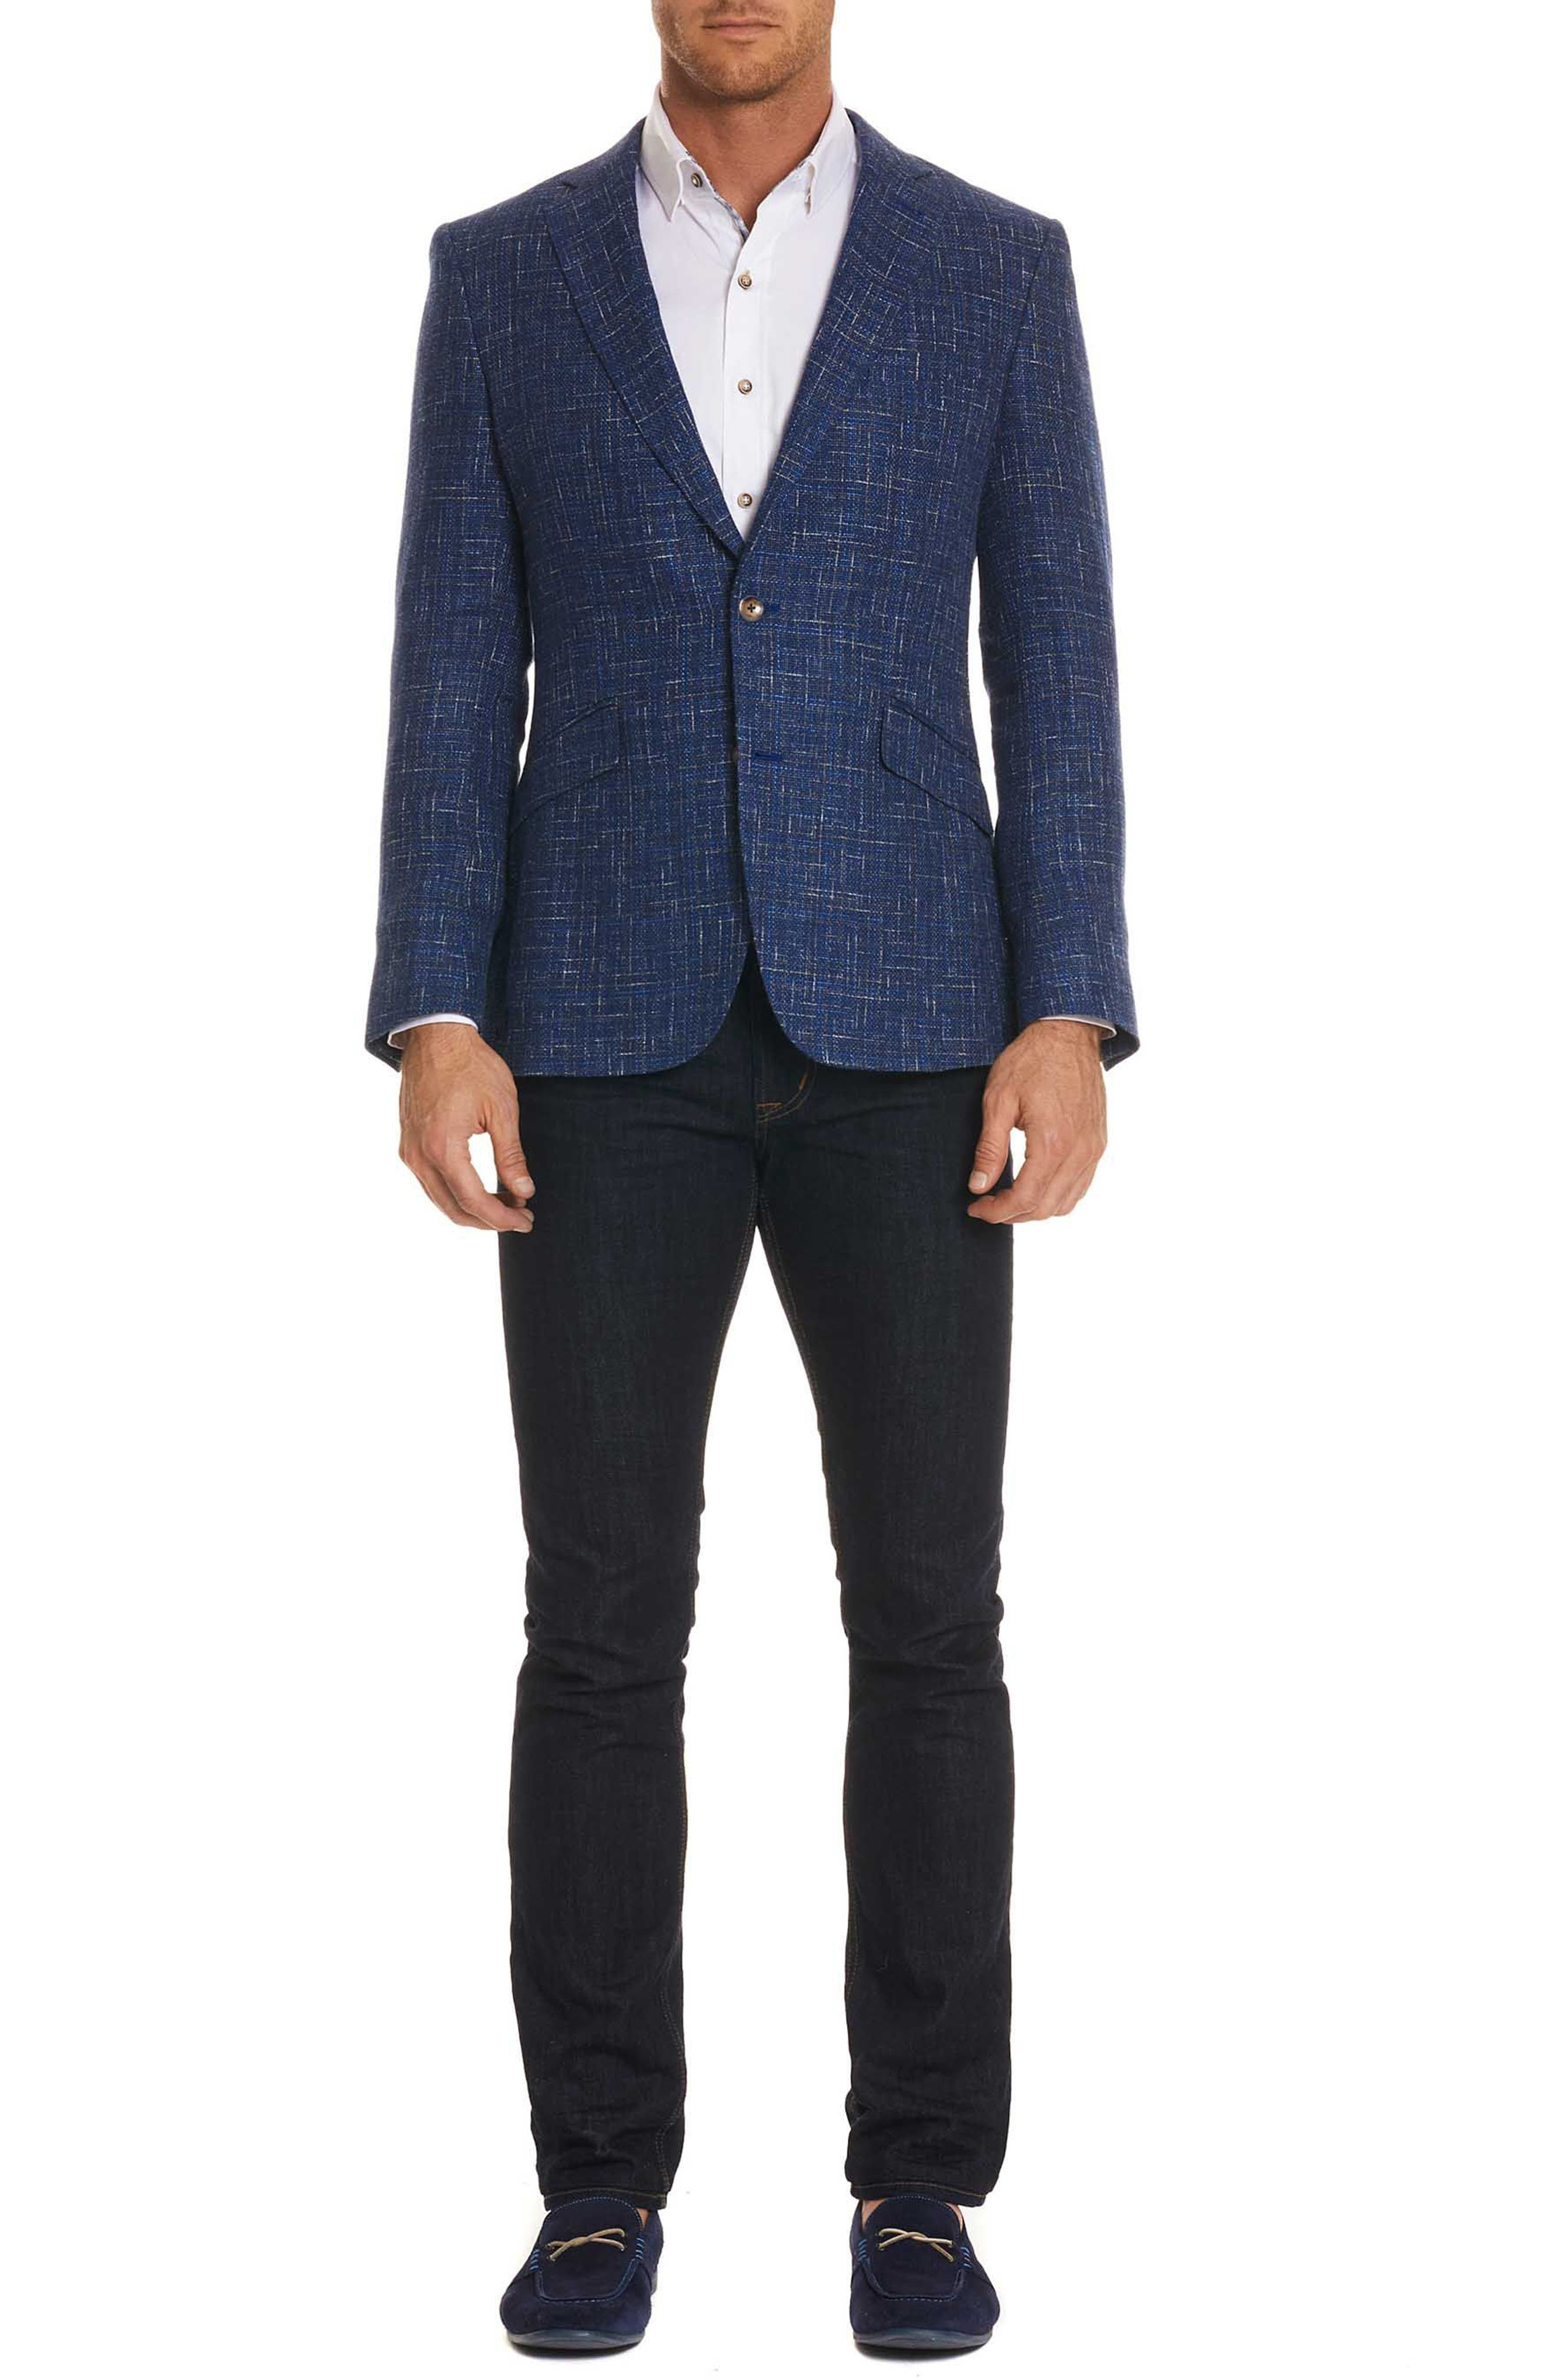 Jeremy Tailored Fit Sportcoat,                             Alternate thumbnail 5, color,                             400